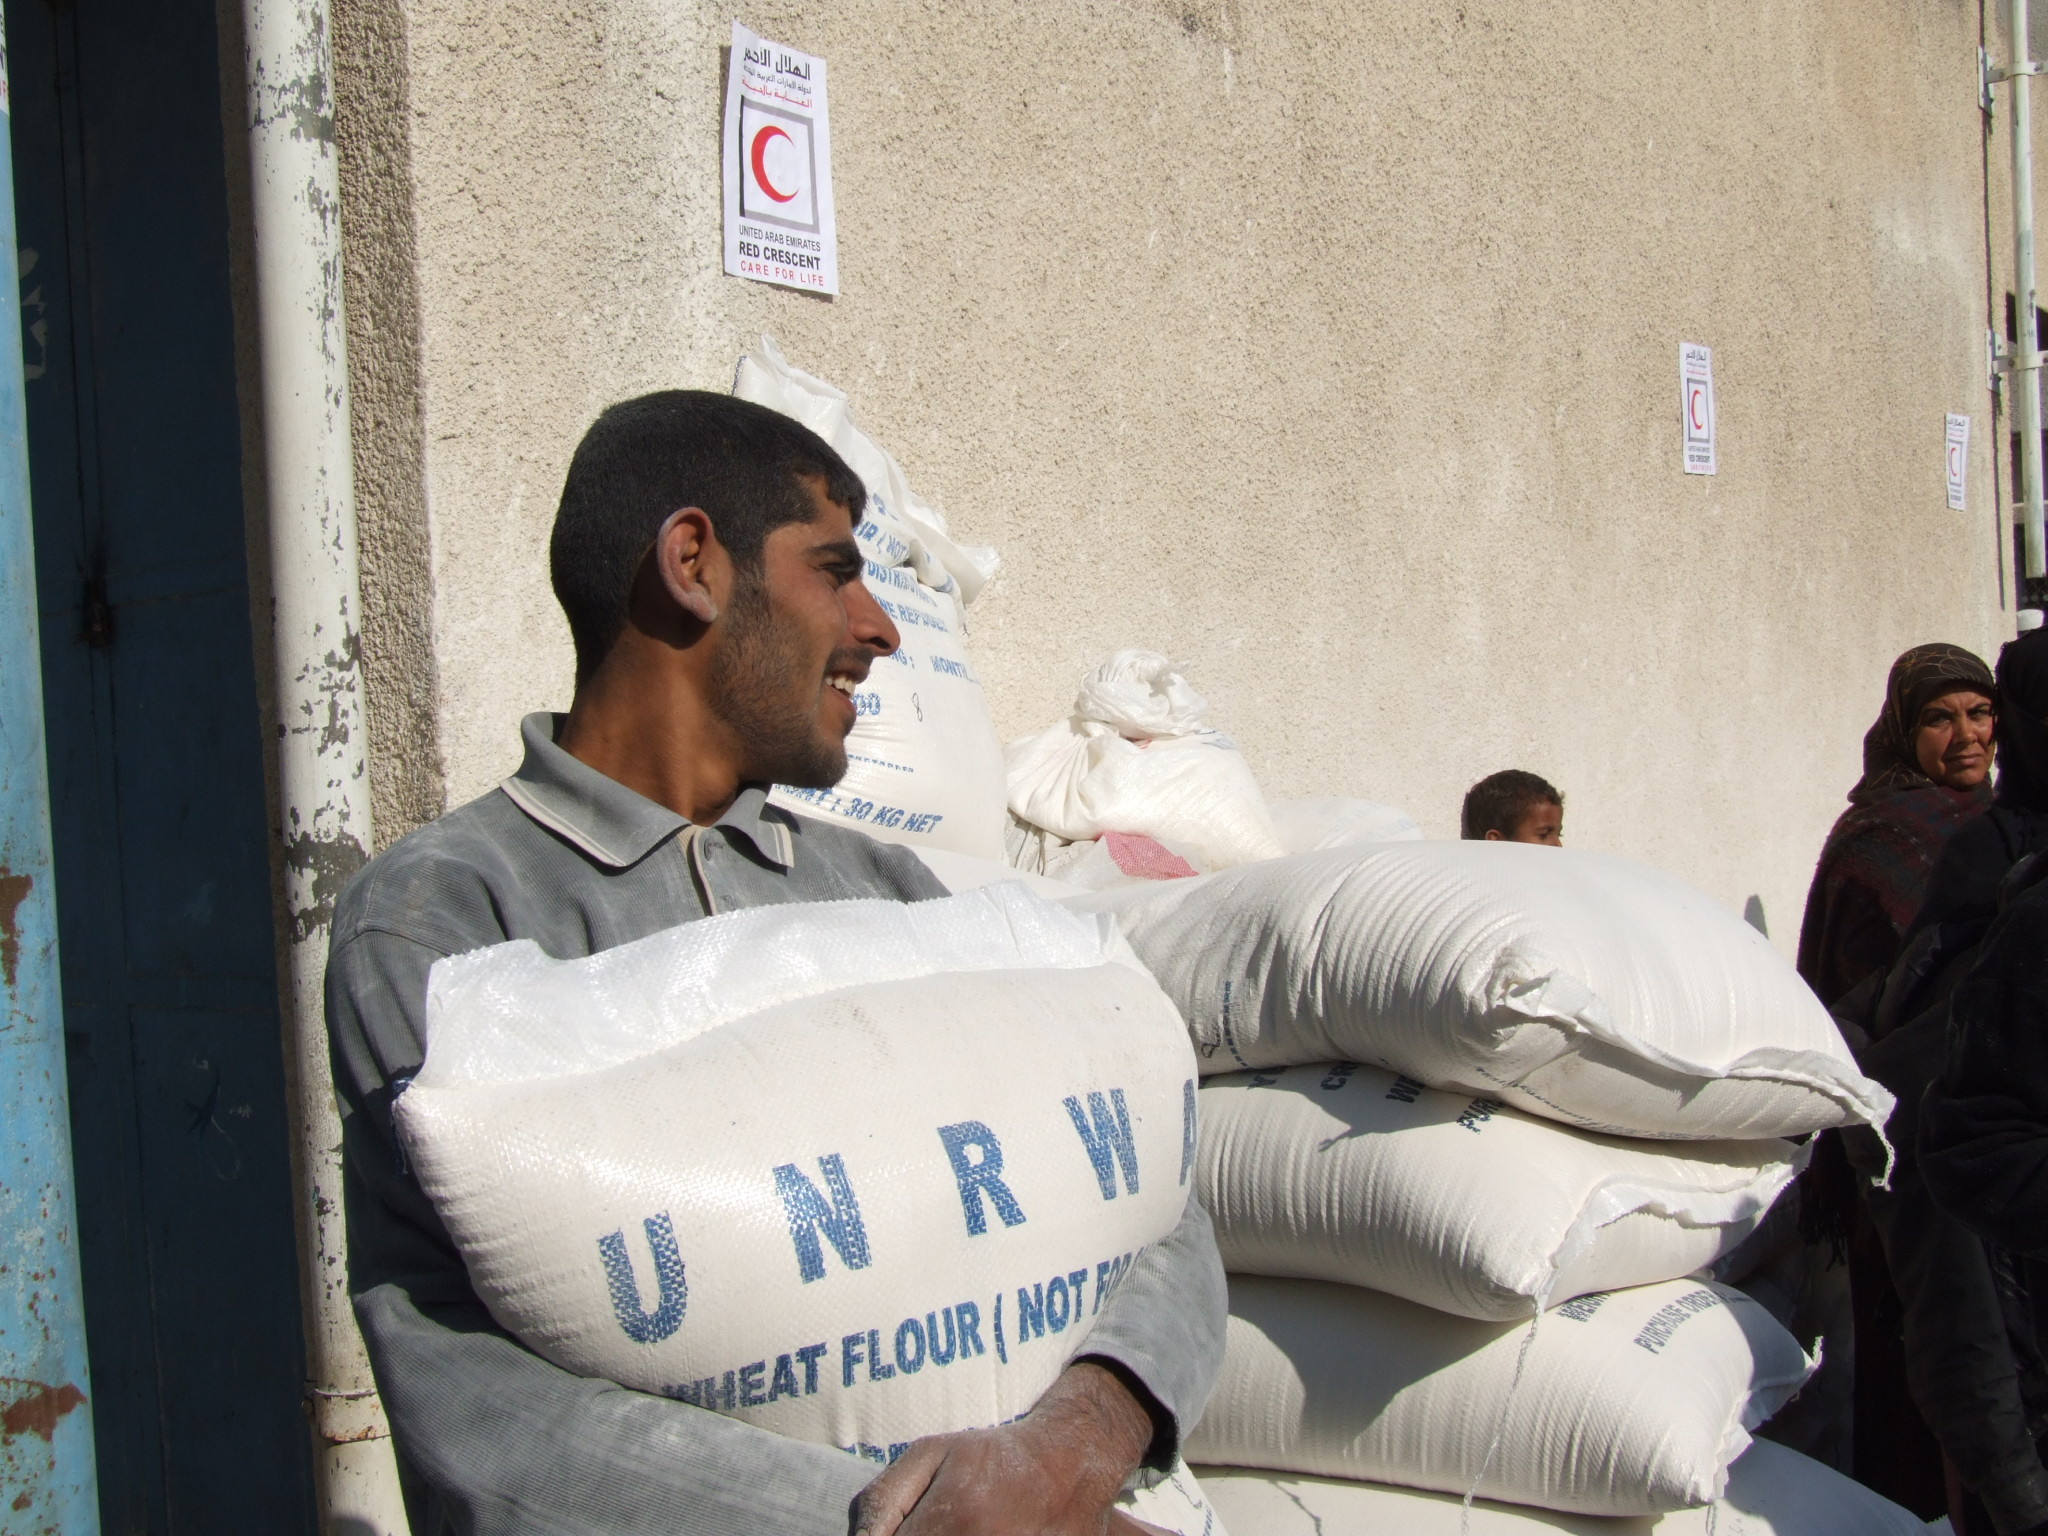 UNRWA - the largest distributor of aid in Gaza - said it needed over US$5 million for food aid as part of its appeal.